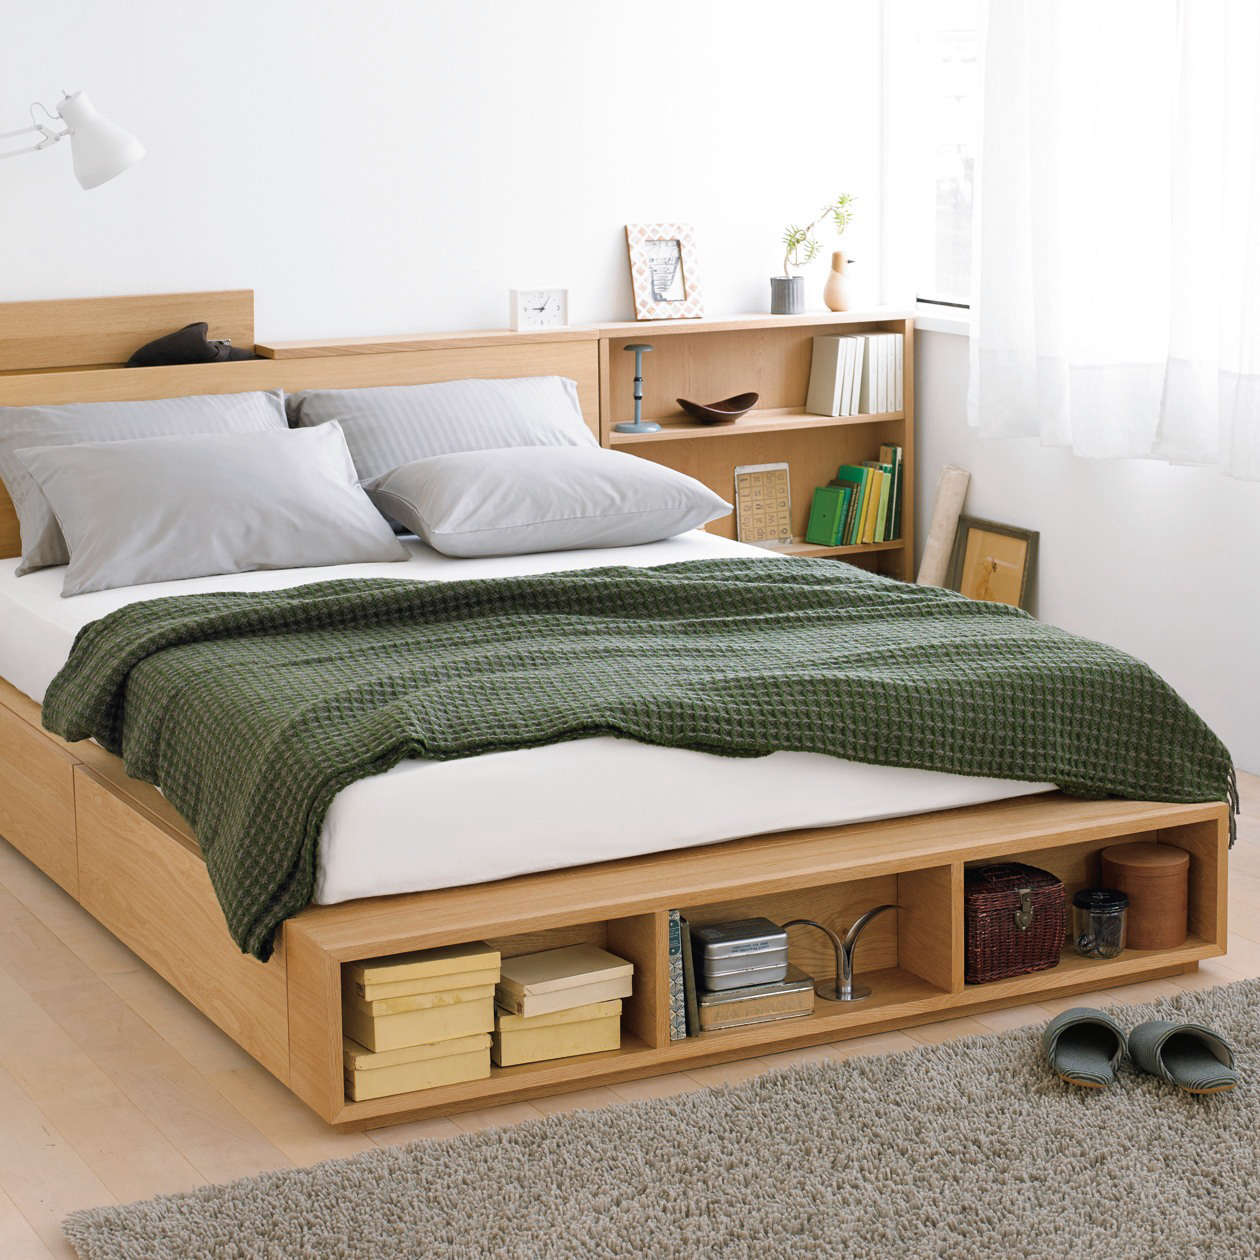 Muji S Large Double Light Ash Bed Has Two Storage Drawers And Can Be Custom